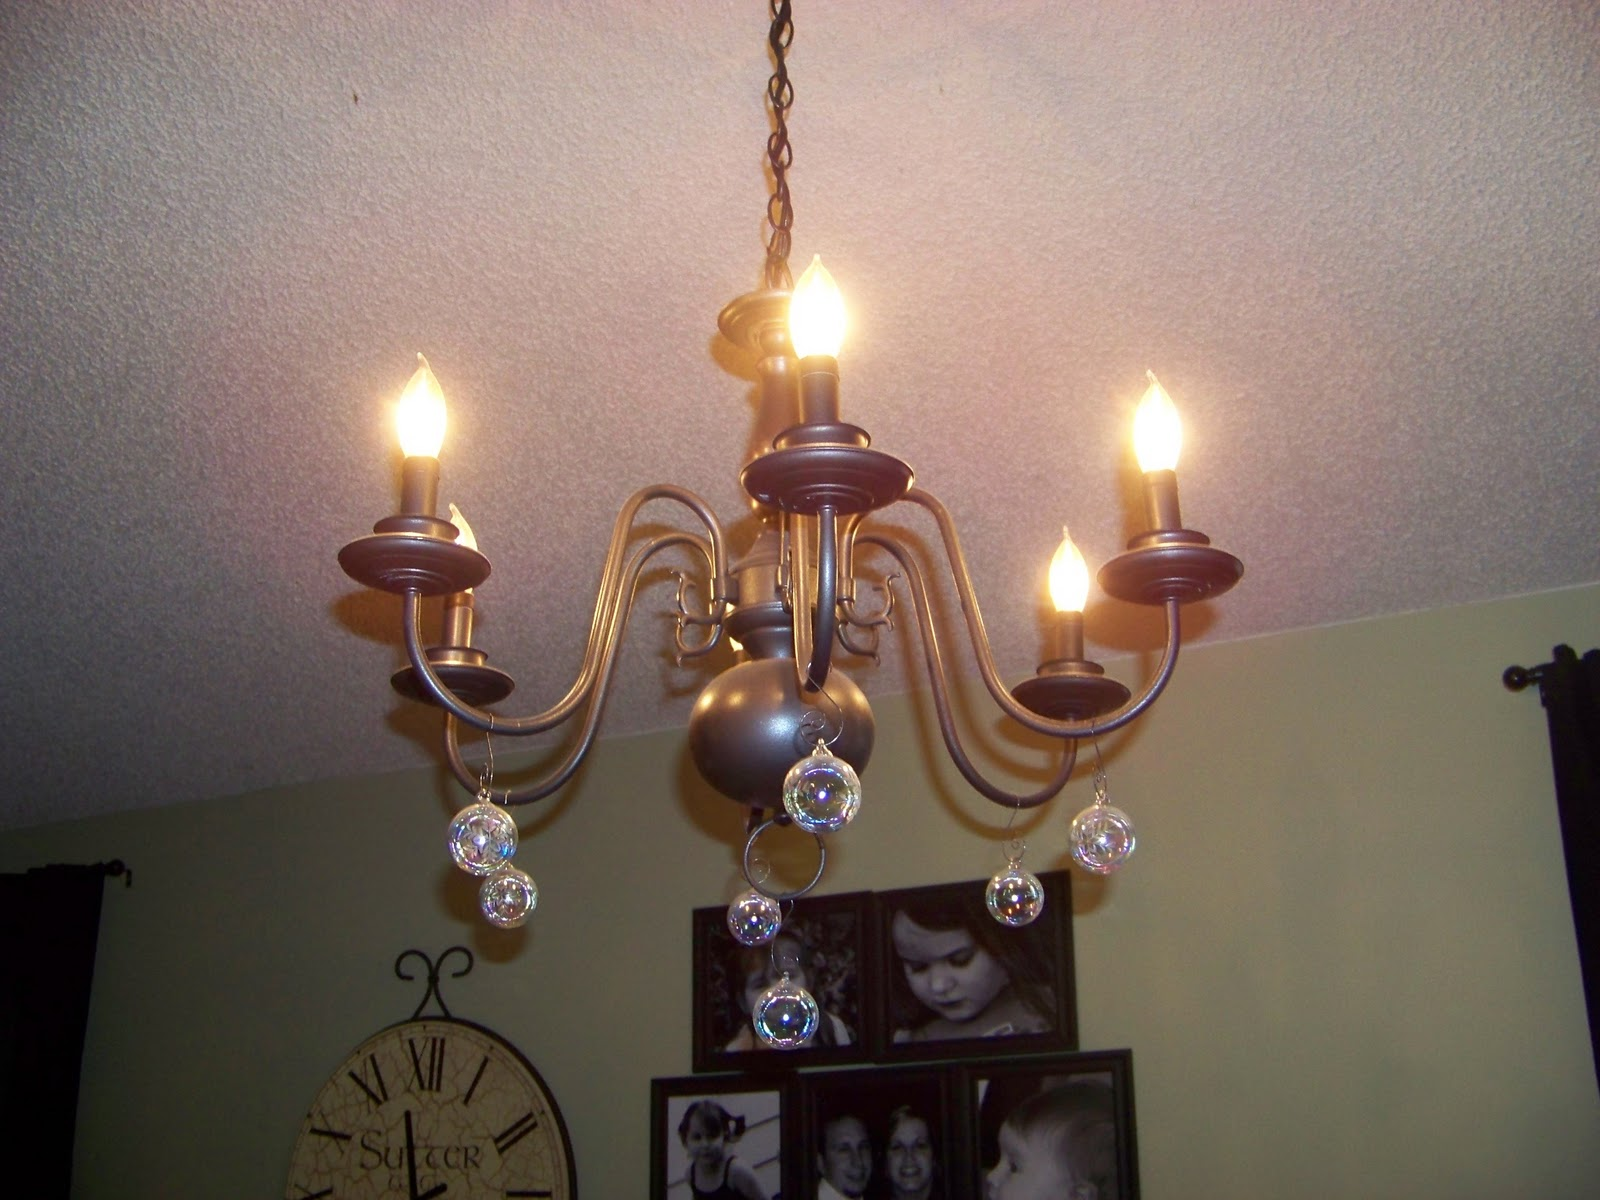 Pottery barn celeste chandelier - The Sunset Lane Diy Pottery Barn Bellora Chandelier Knock Off